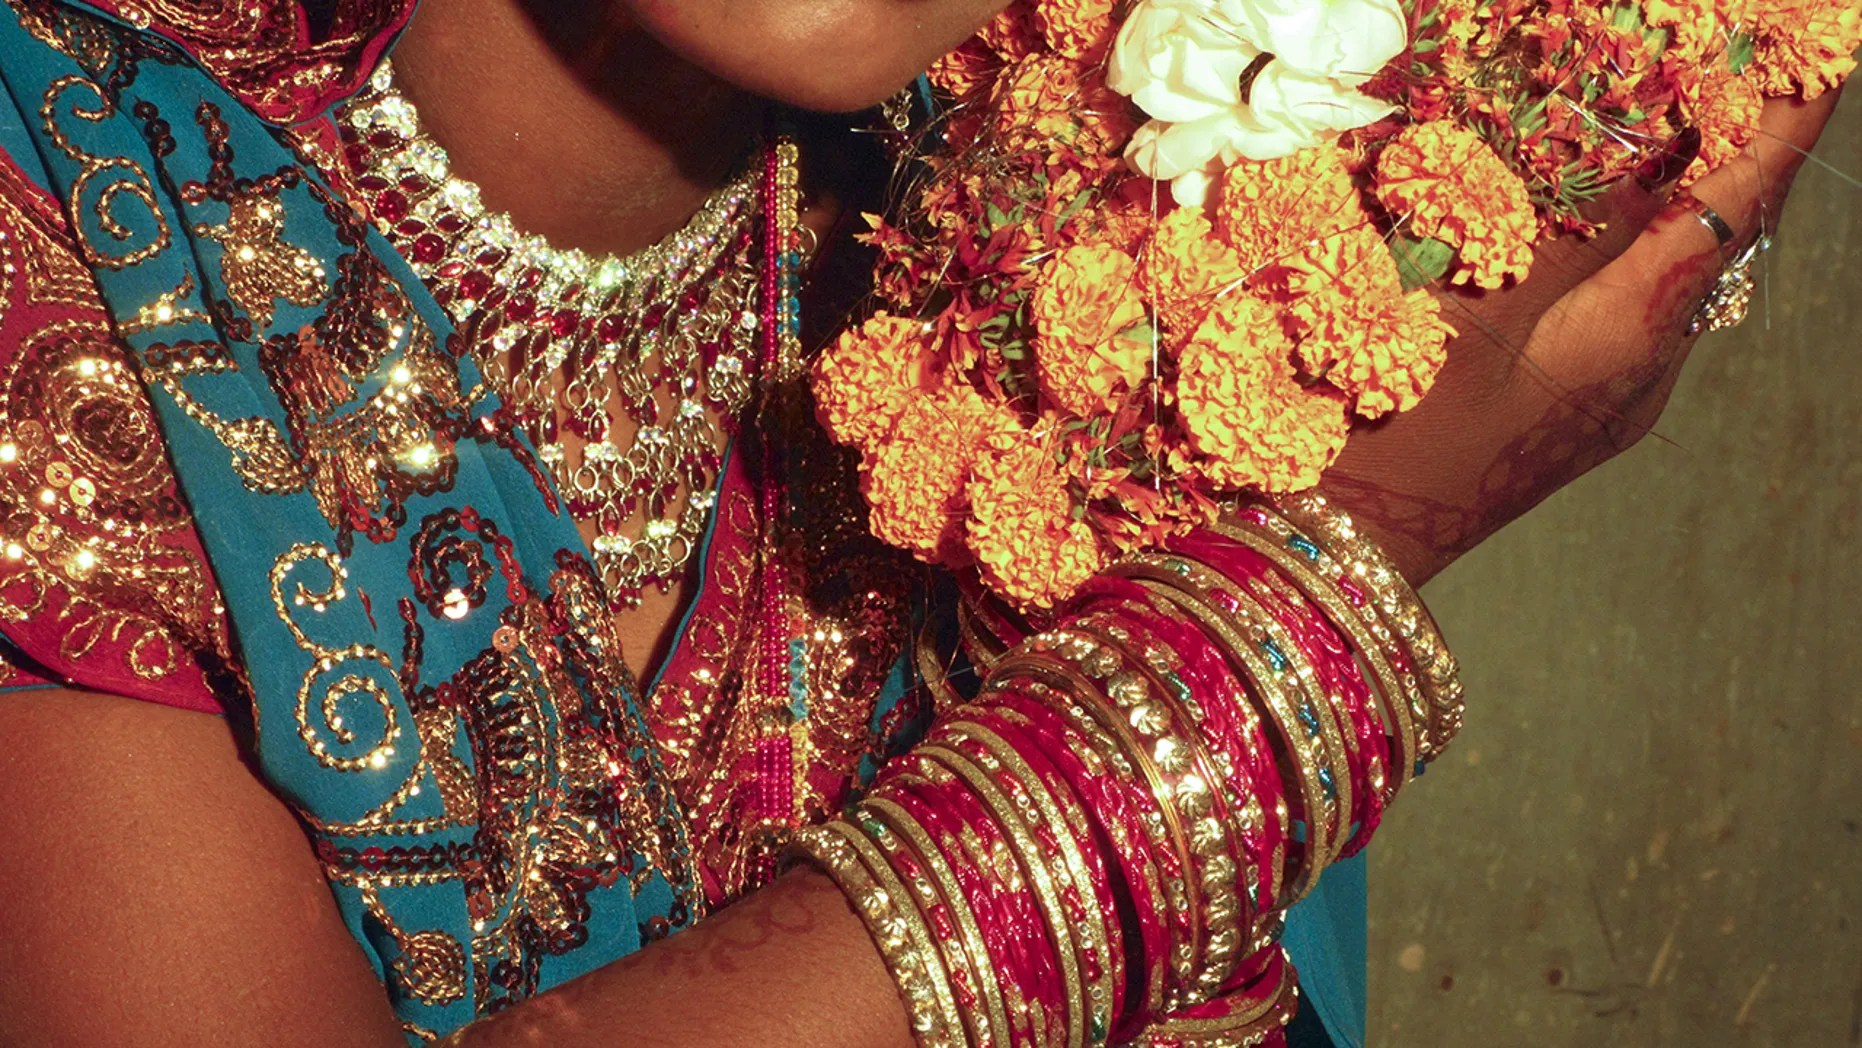 The state of Assam in India will provide gold to brides in low income families